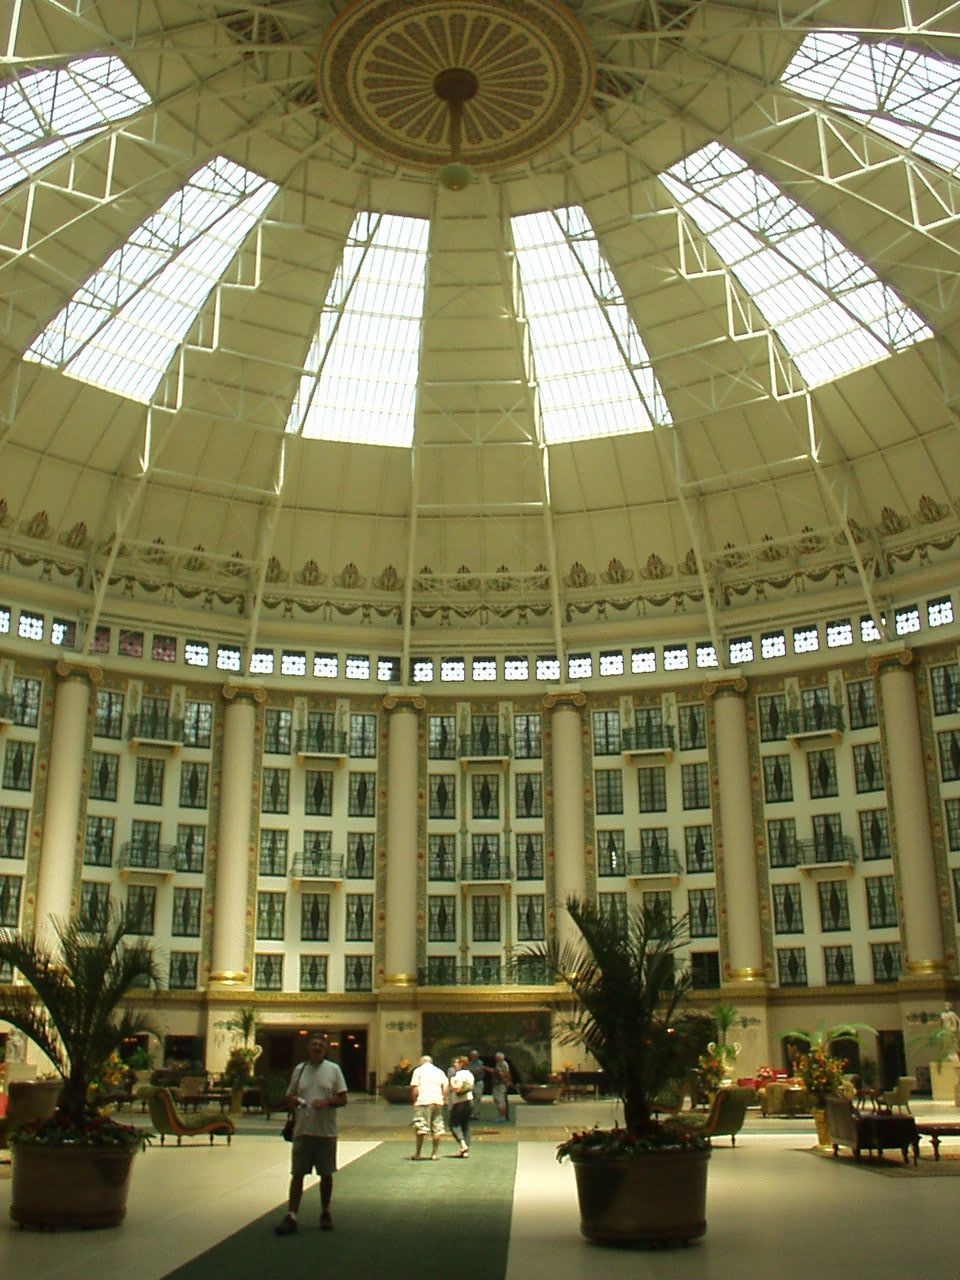 West Baden Springs Hotel Wikipedia 43642269 Top Ten Reasons For